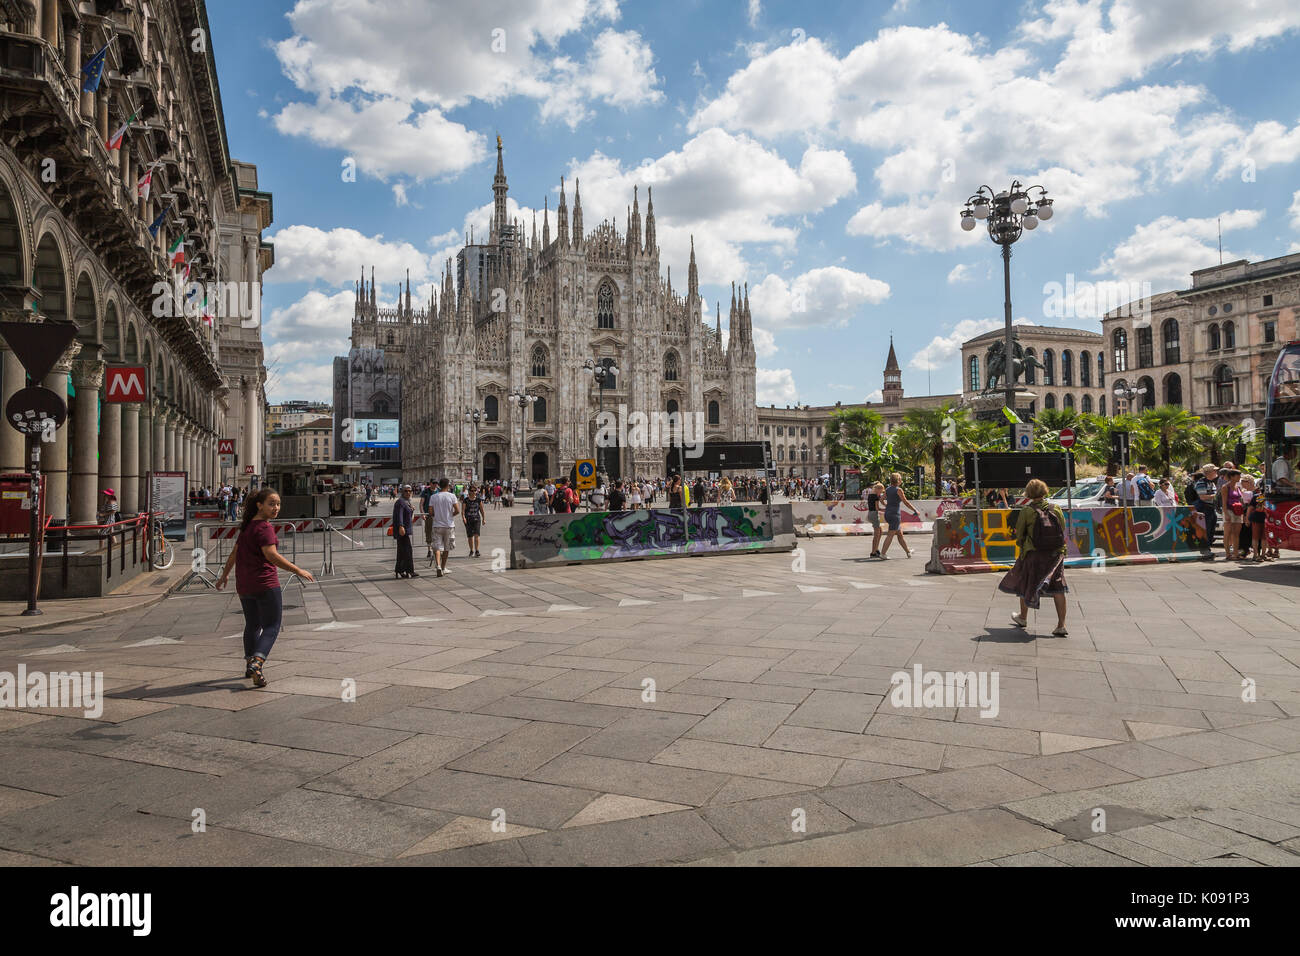 Jersey barriers in Piazza Duomo, Milan, Italy Stock Photo